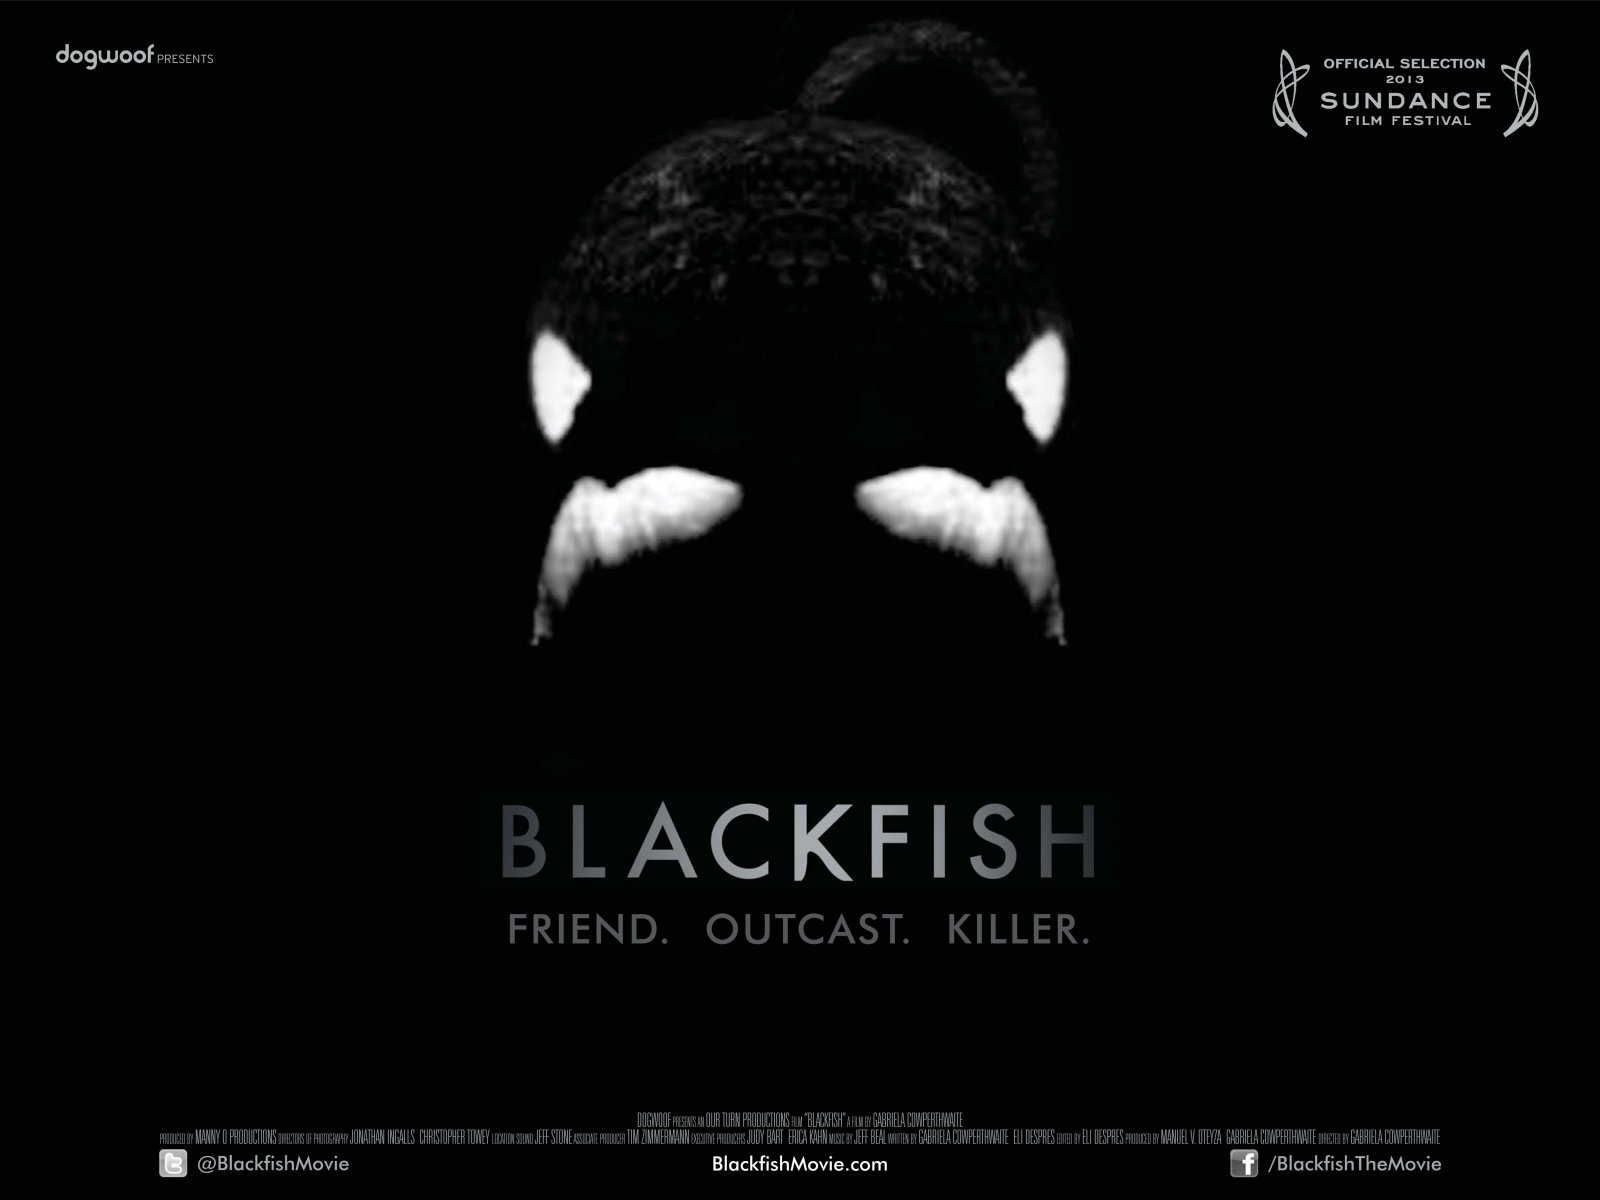 photo source: blackfishmovie.com